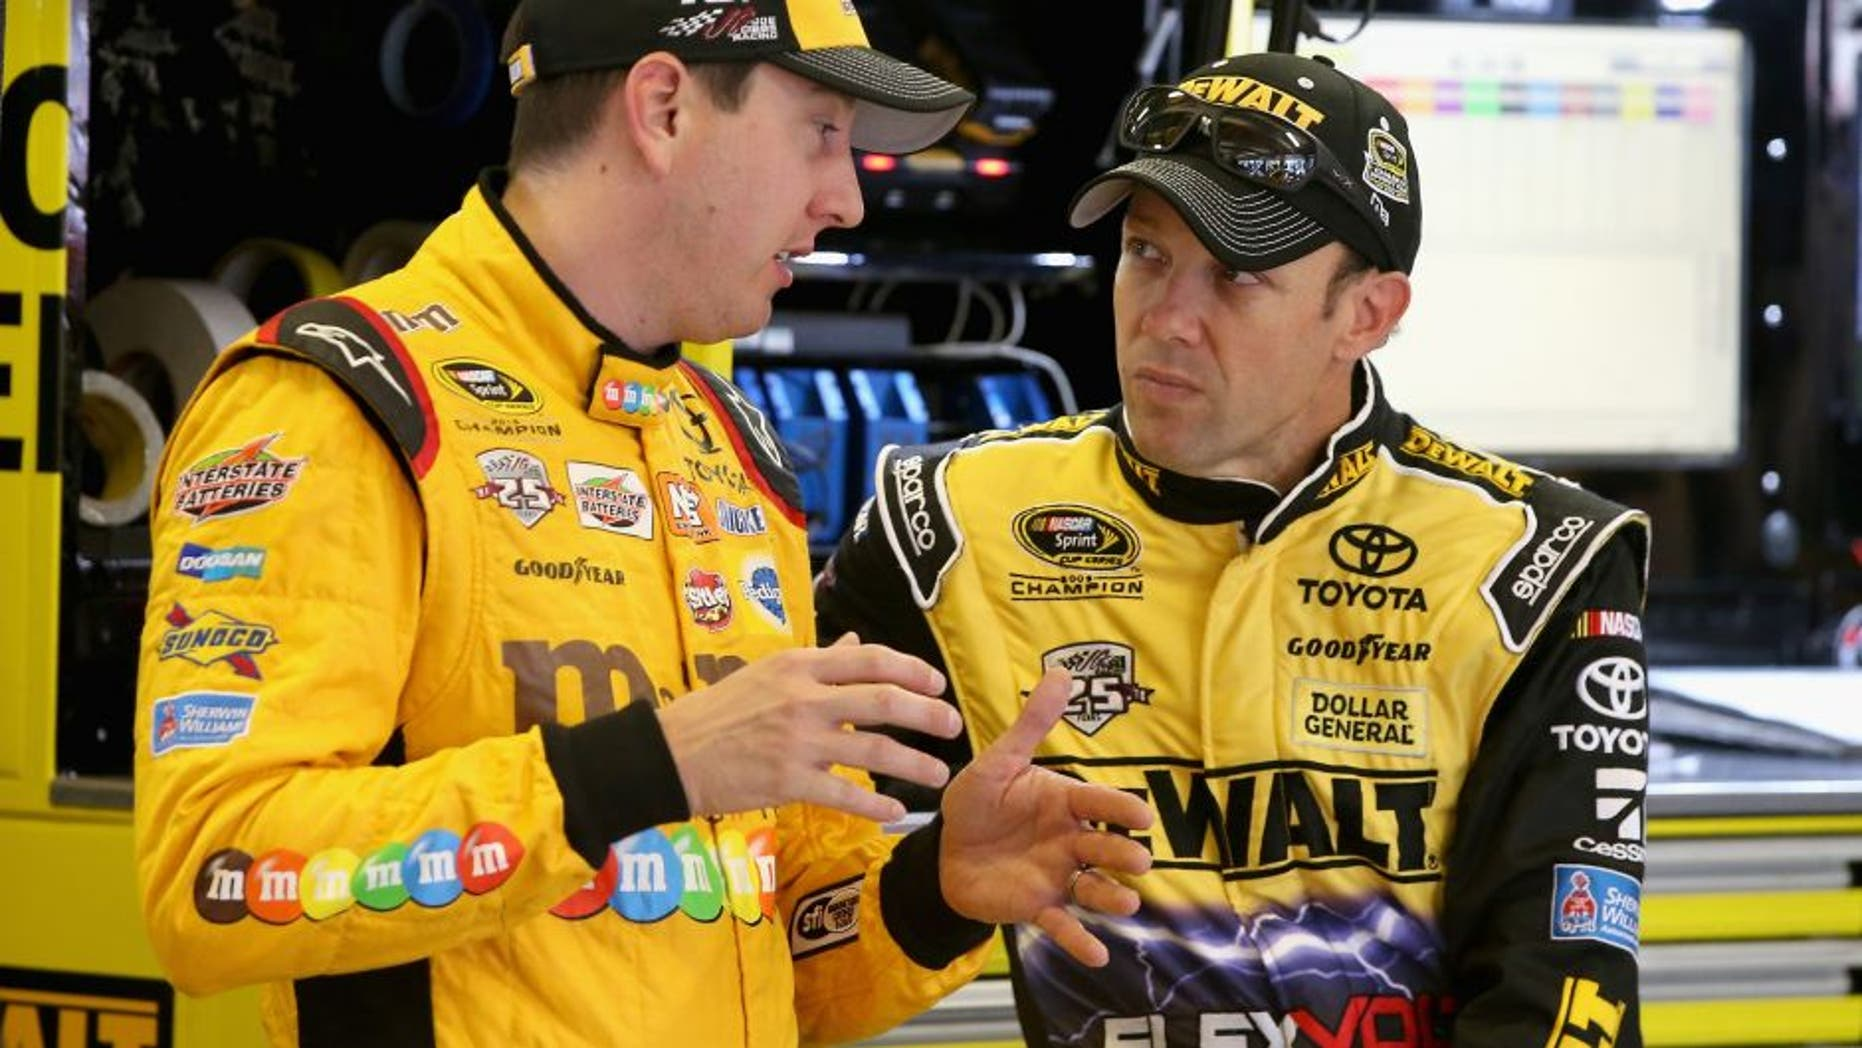 FORT WORTH, TX - NOVEMBER 04: Kyle Busch, driver of the #18 M&M's Toyota, and Matt Kenseth, driver of the #20 DEWALT FLEXVOLT Toyota, talk in the garage area during practice for the NASCAR Sprint Cup Series AAA Texas 500 at Texas Motor Speedway on November 4, 2016 in Fort Worth, Texas. (Photo by Sean Gardner/NASCAR via Getty Images)